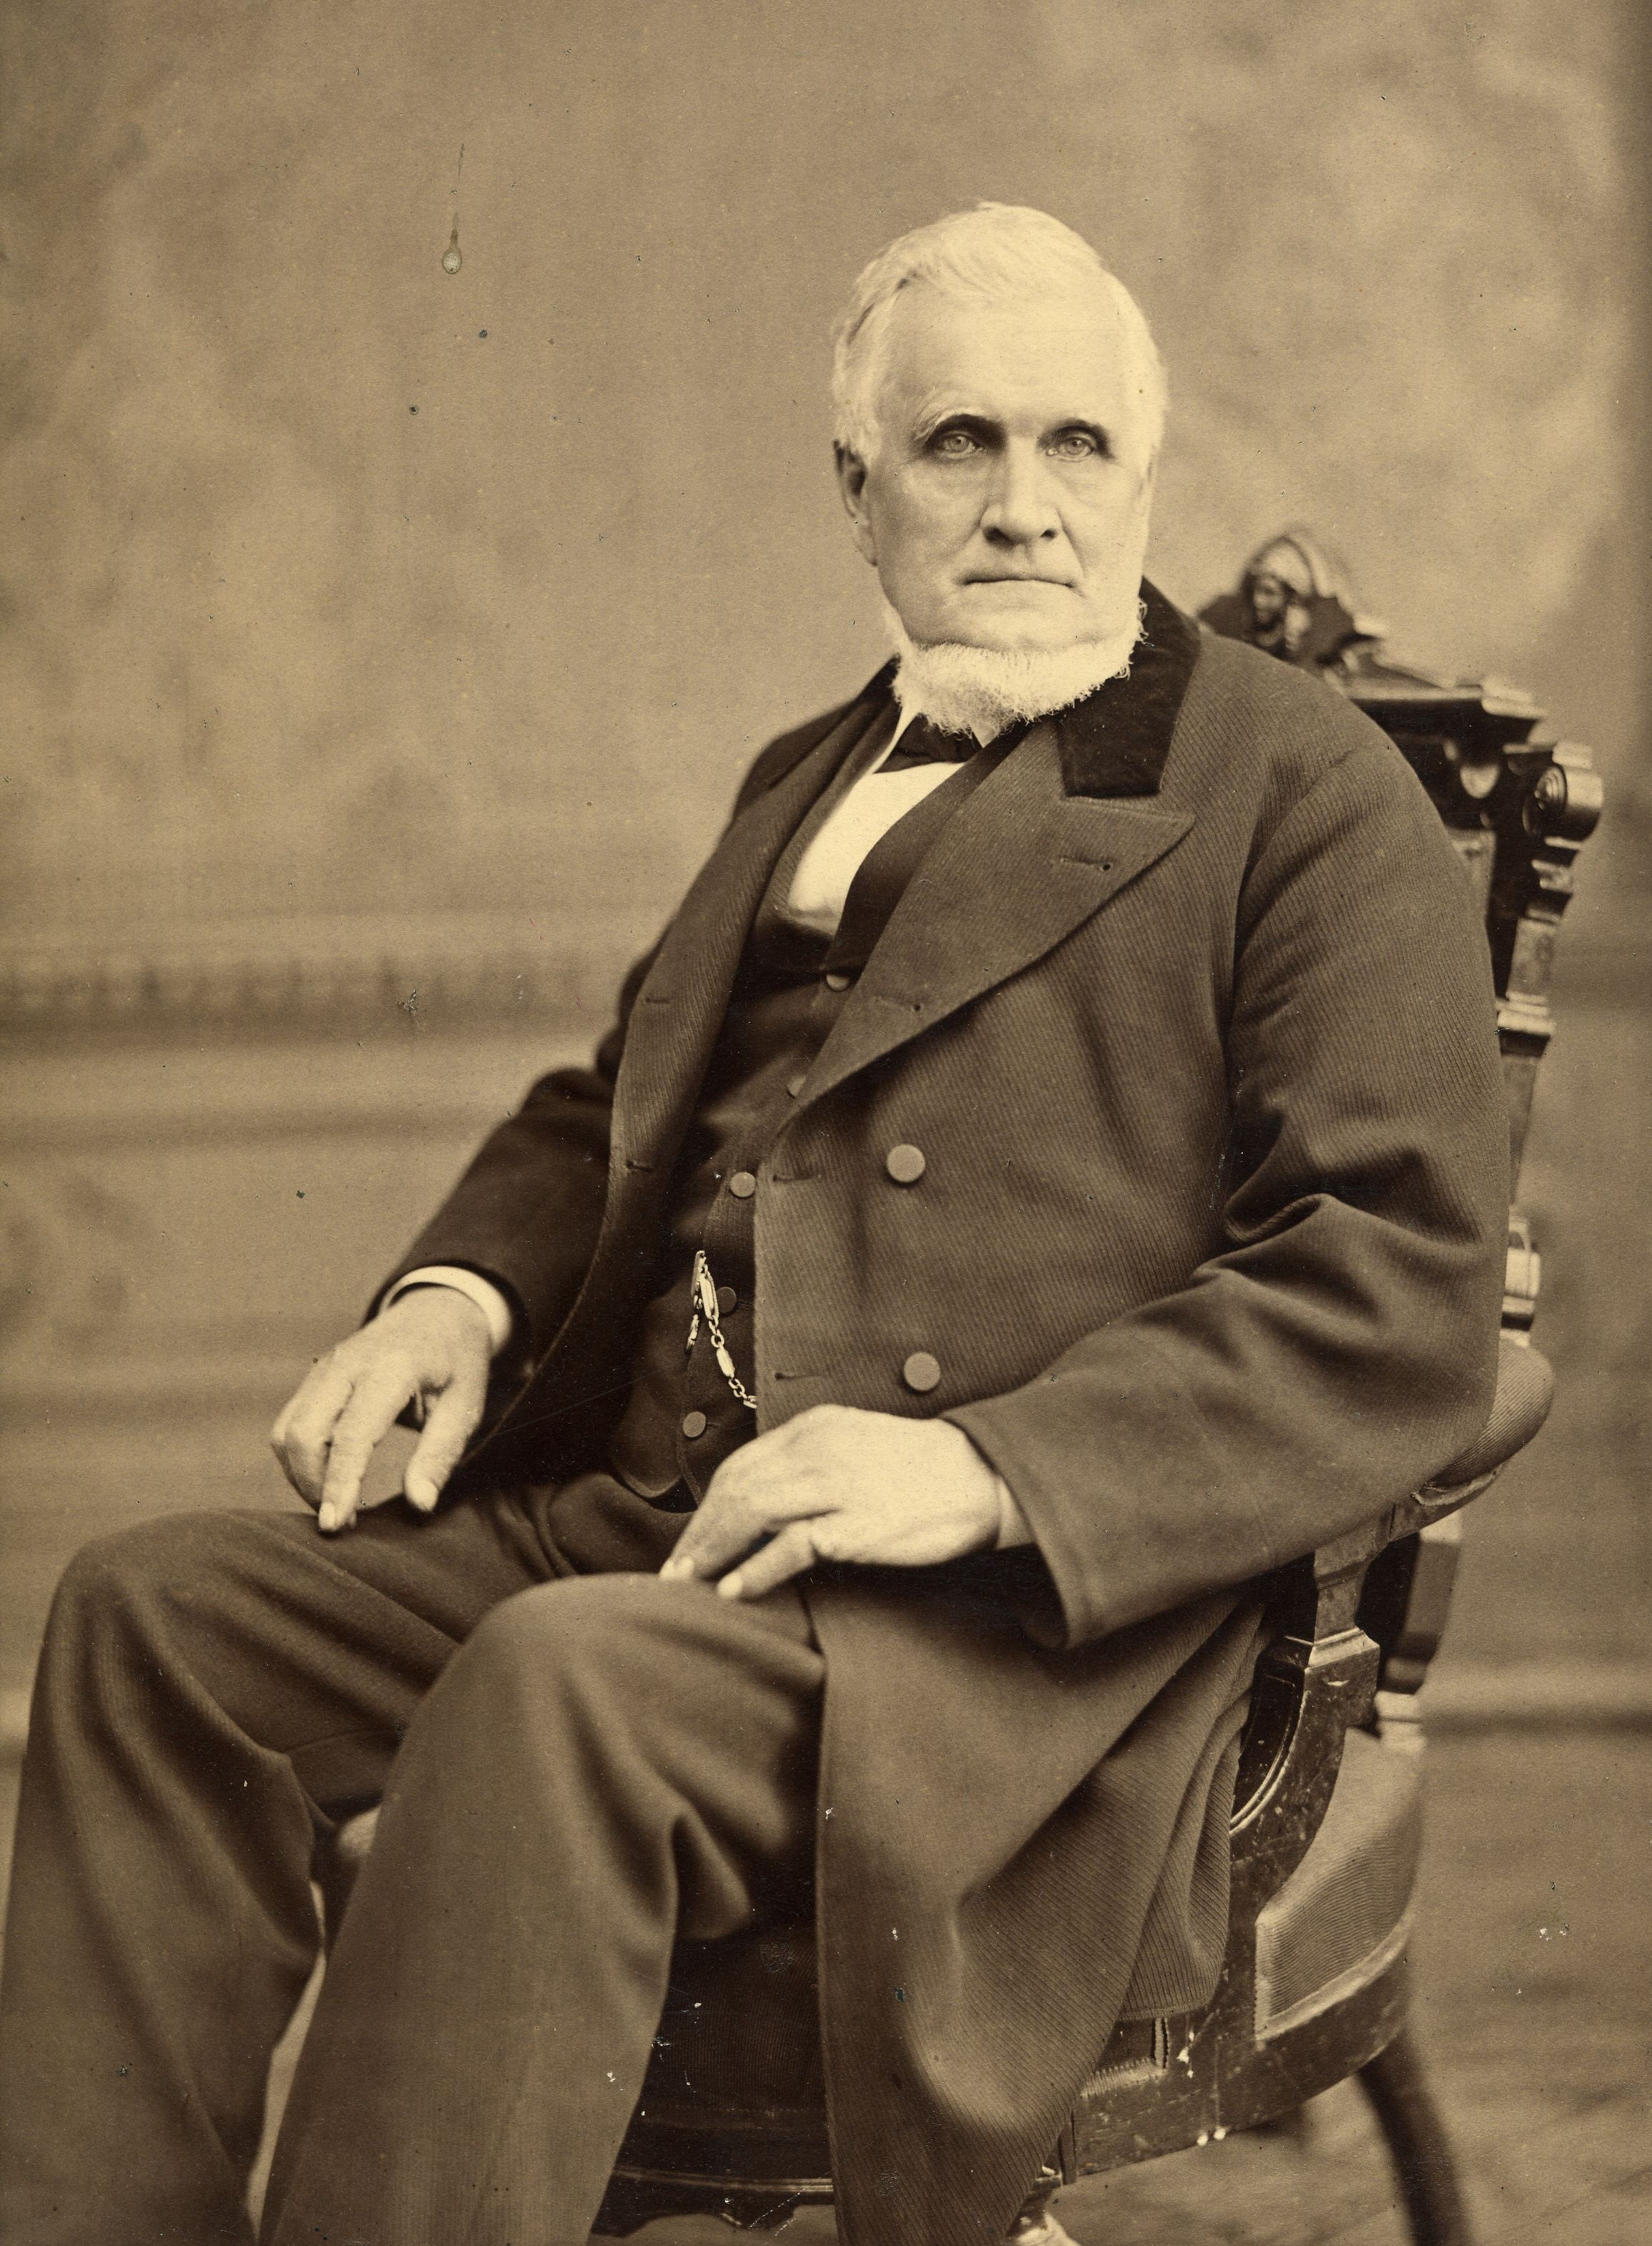 John_Taylor_seated_in_chair